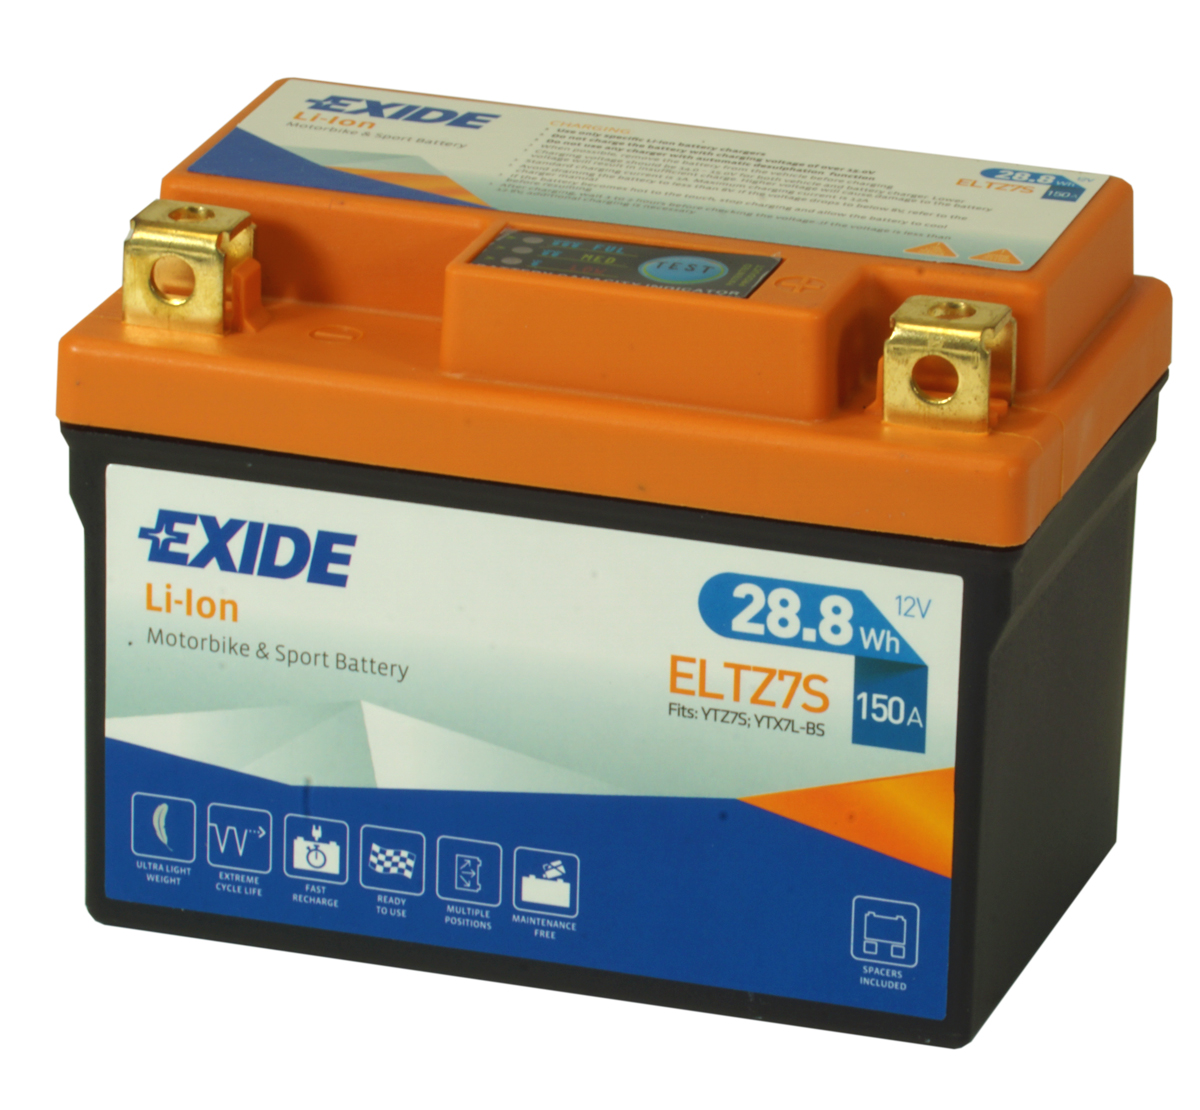 Exide ELTZ7S Lithium Motorcycle Battery